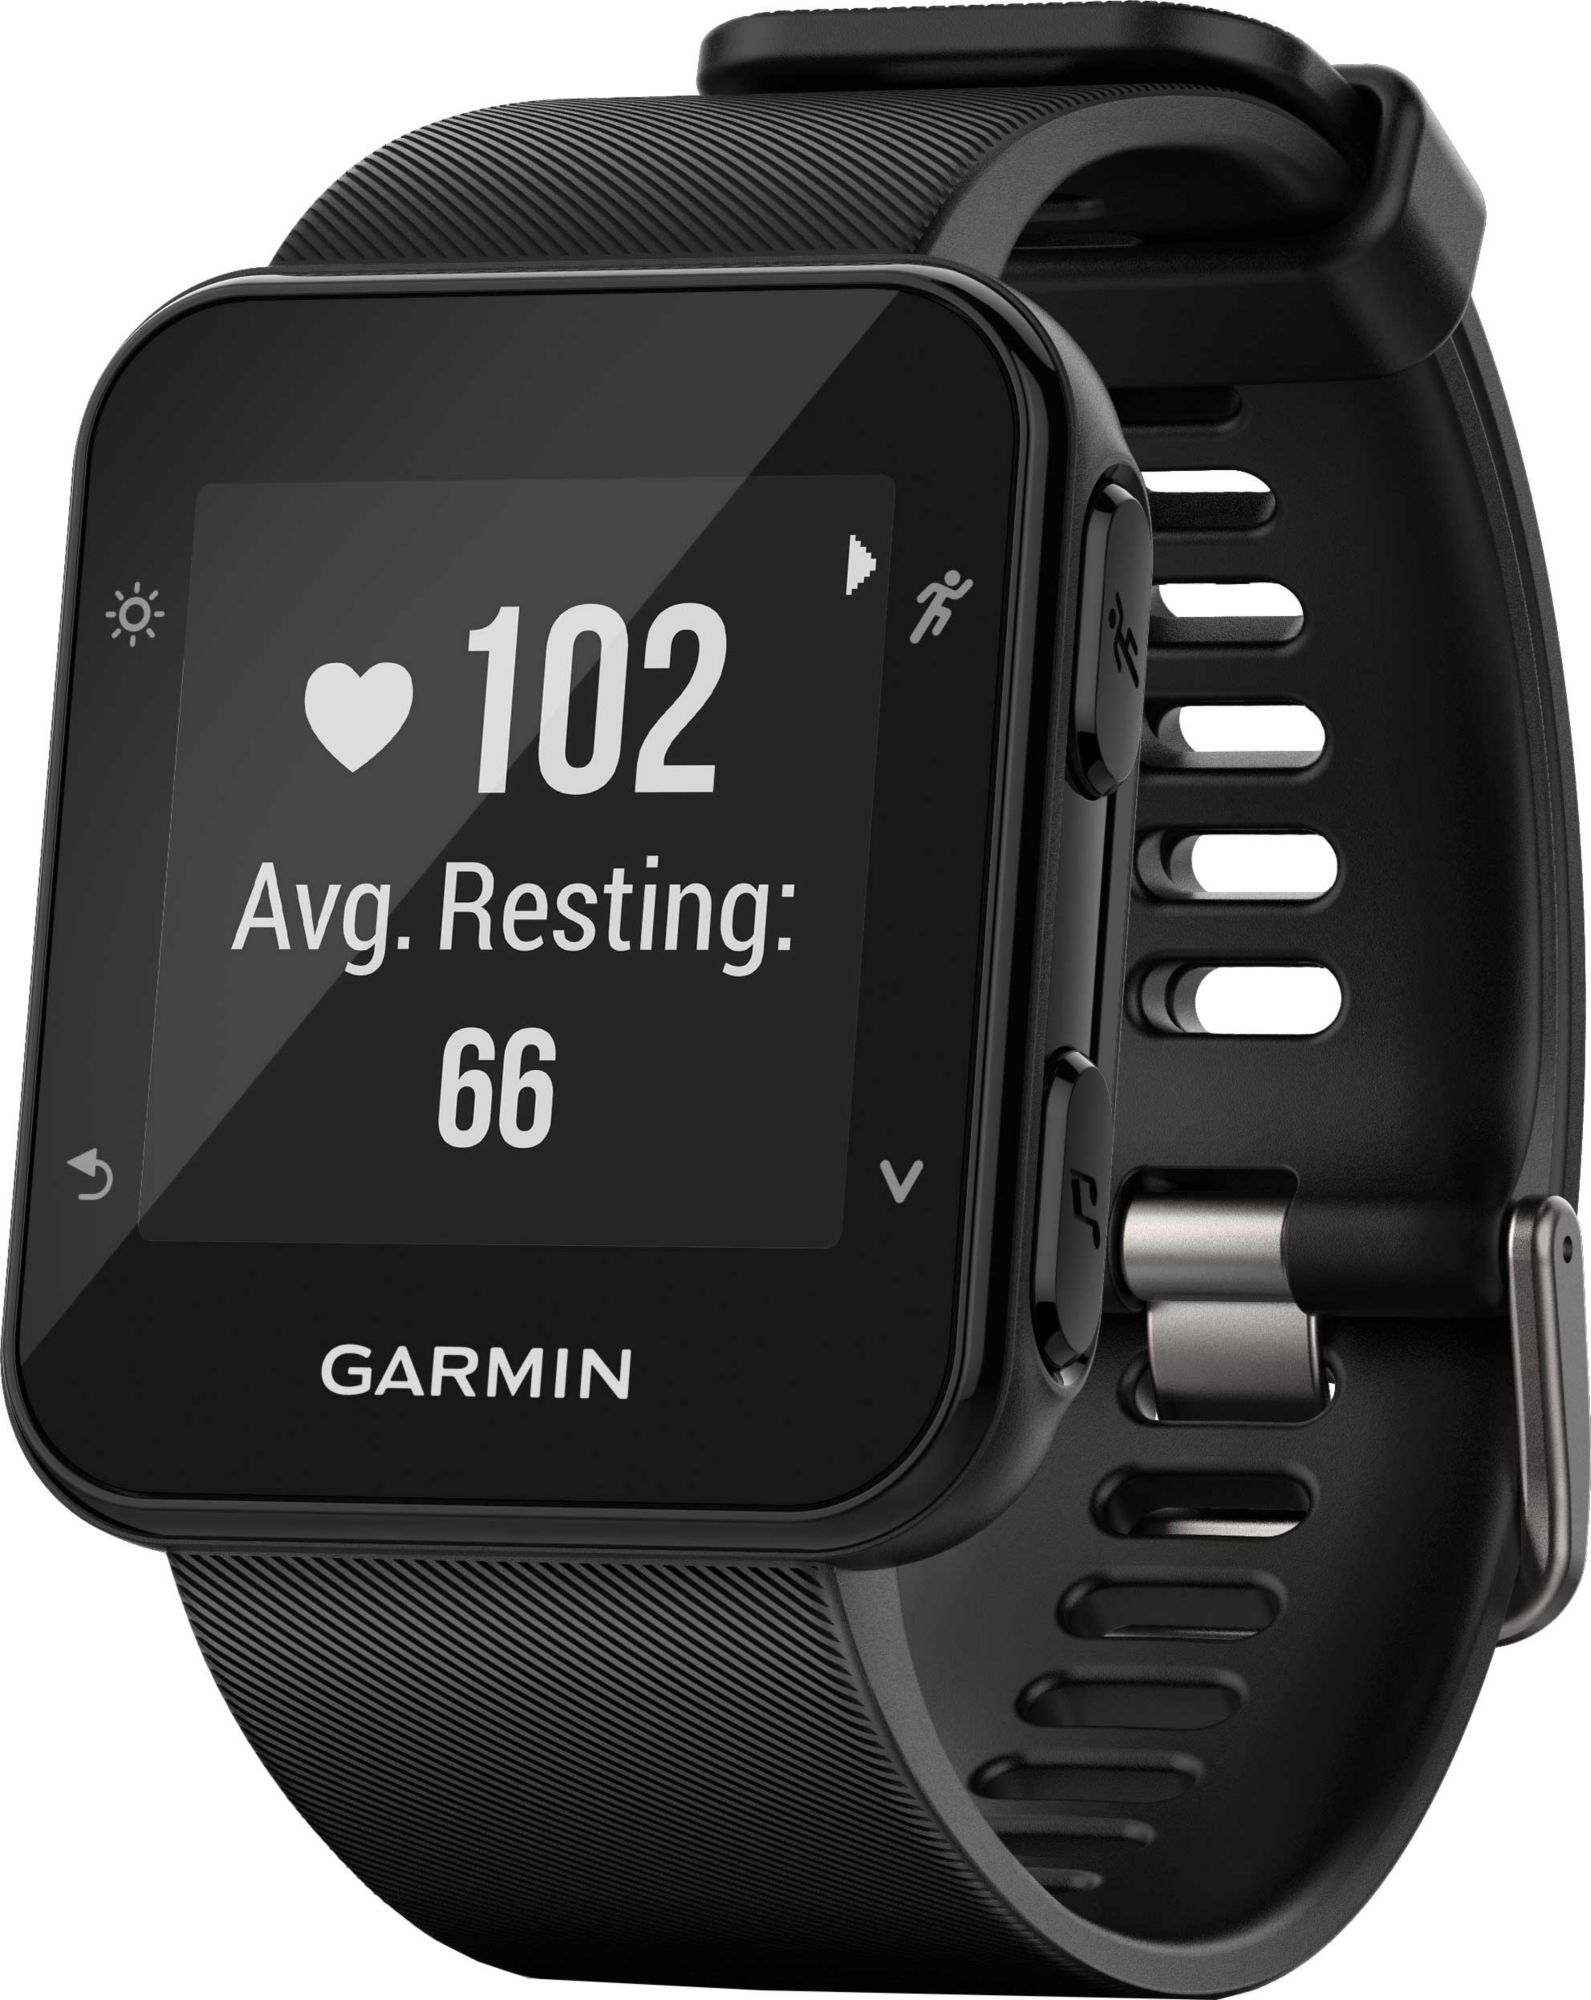 cycle pc garmin watches watch gps approach computers viewprd shop asp